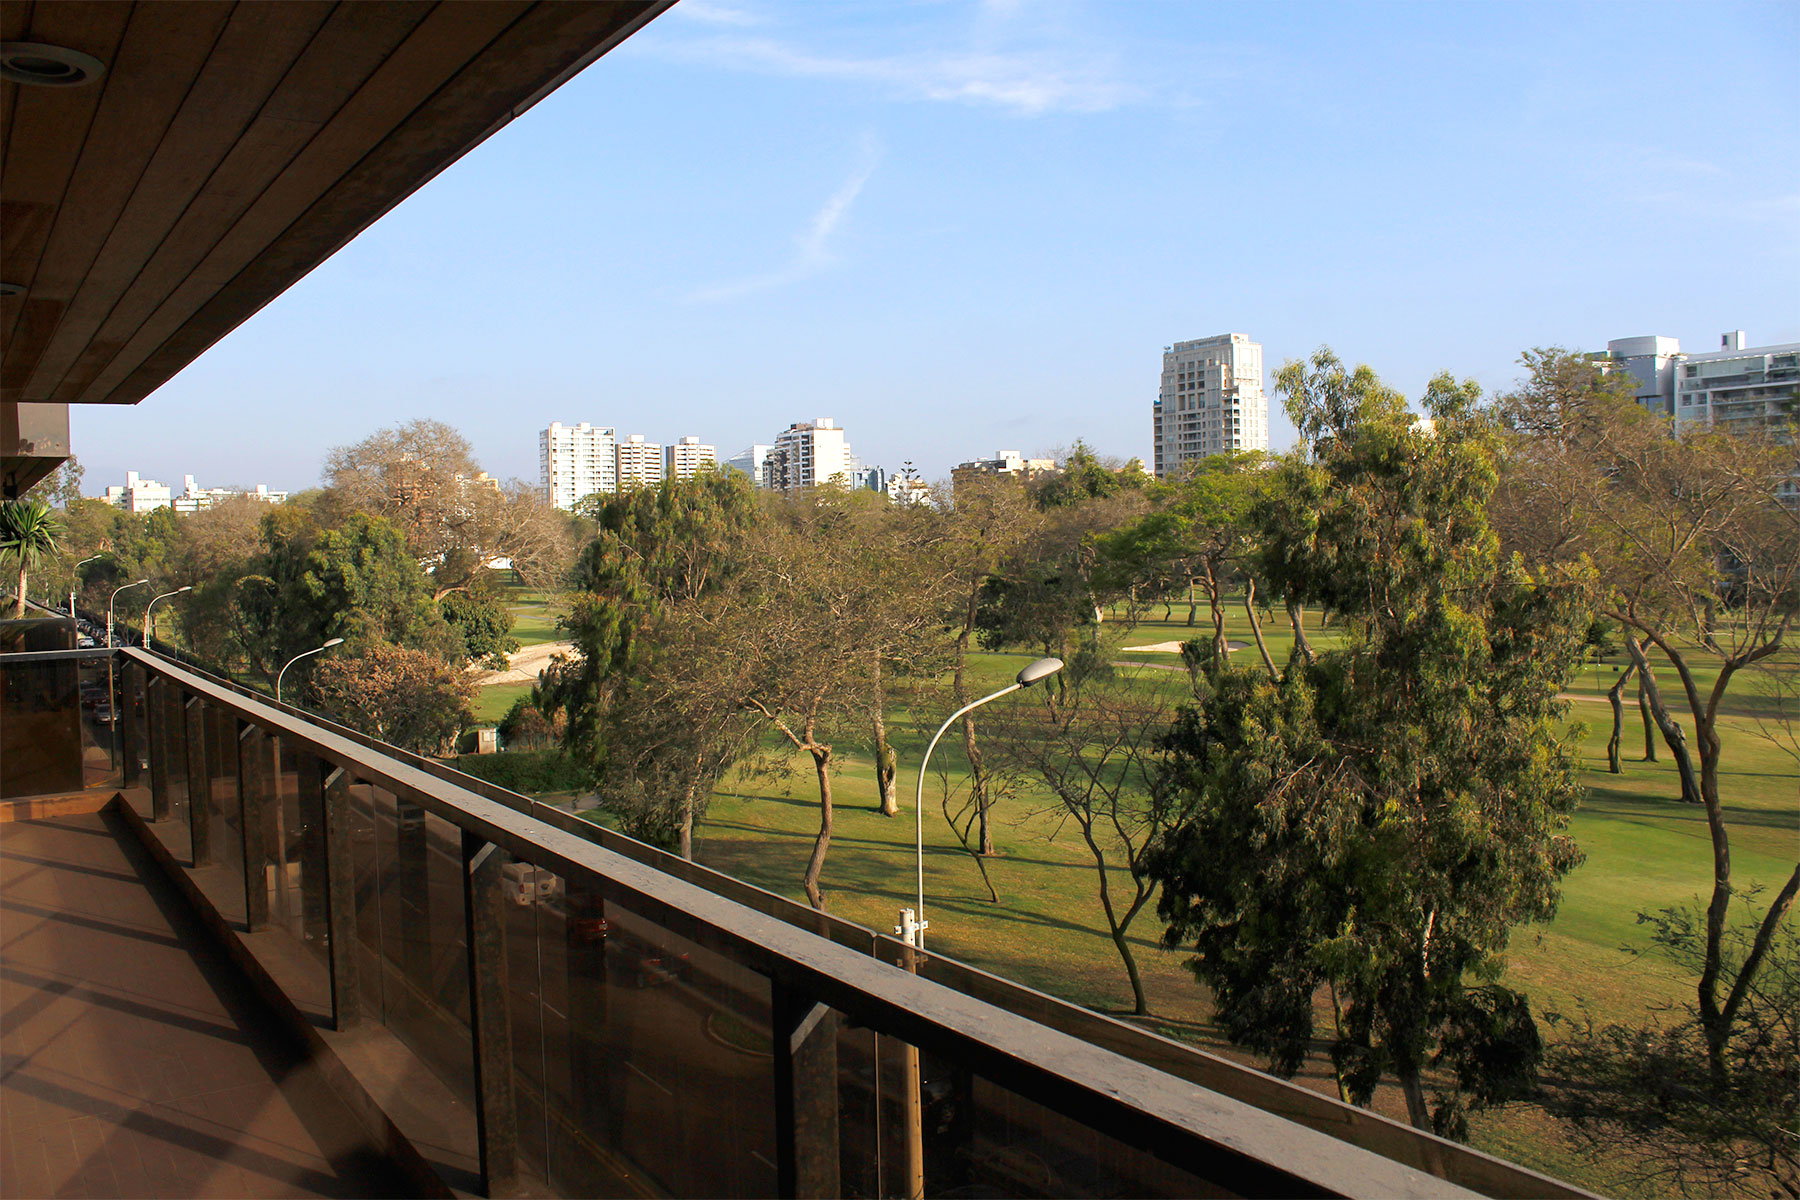 Appartamento per Vendita alle ore Spacious apartment with an amazing view of the Golf Calle Los Nogales, San Isidro, Lima, 27 Peru